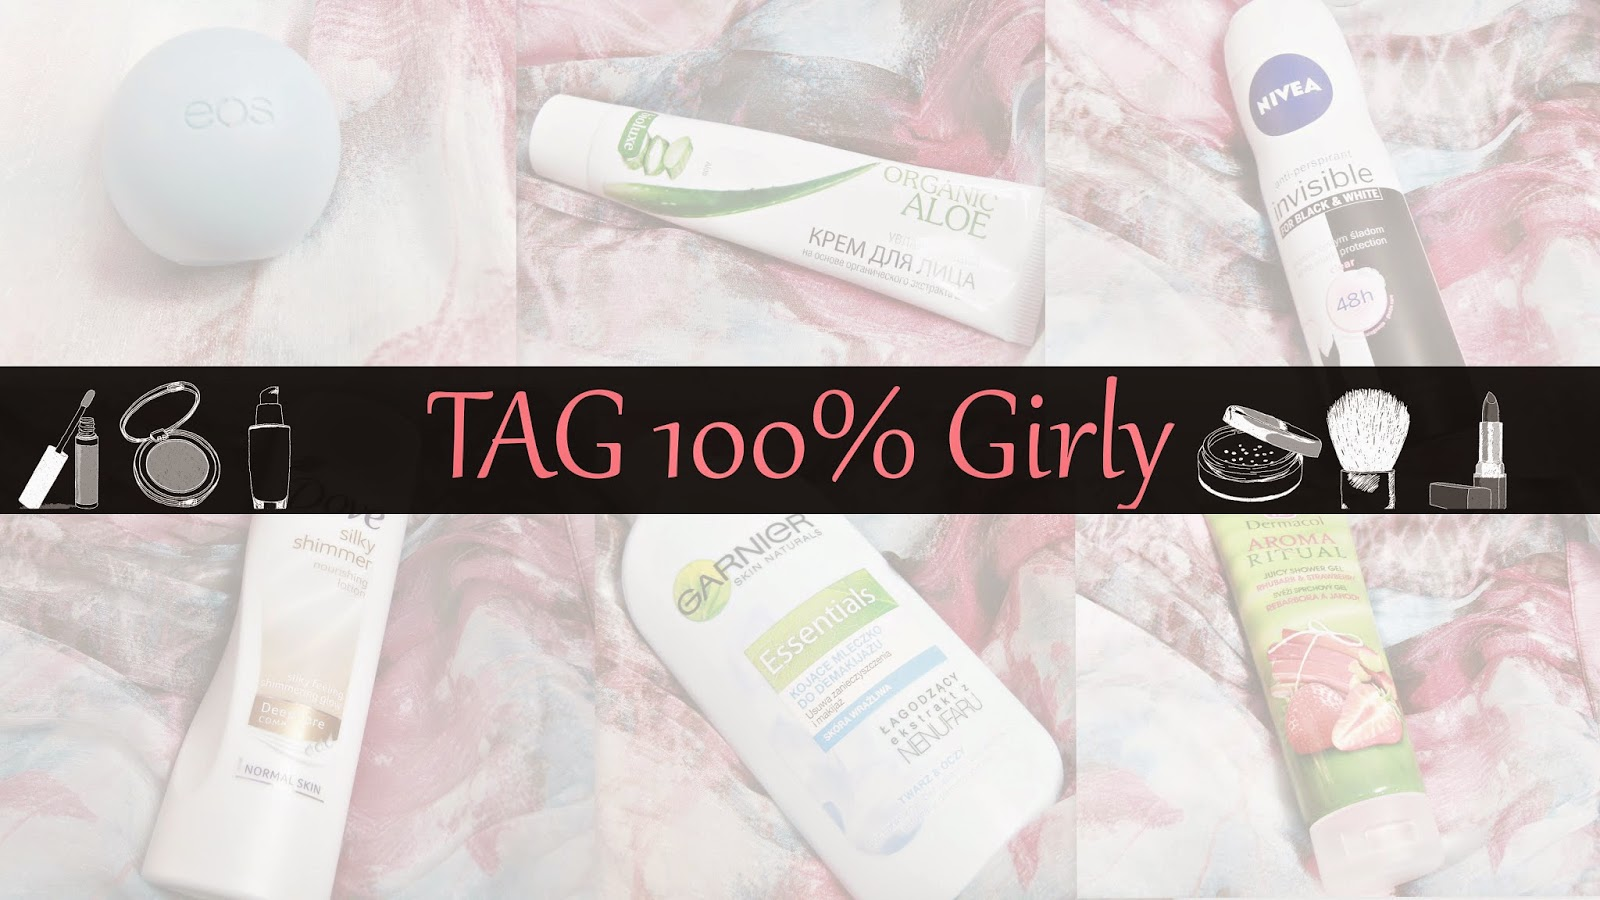 TAG 100% Girly